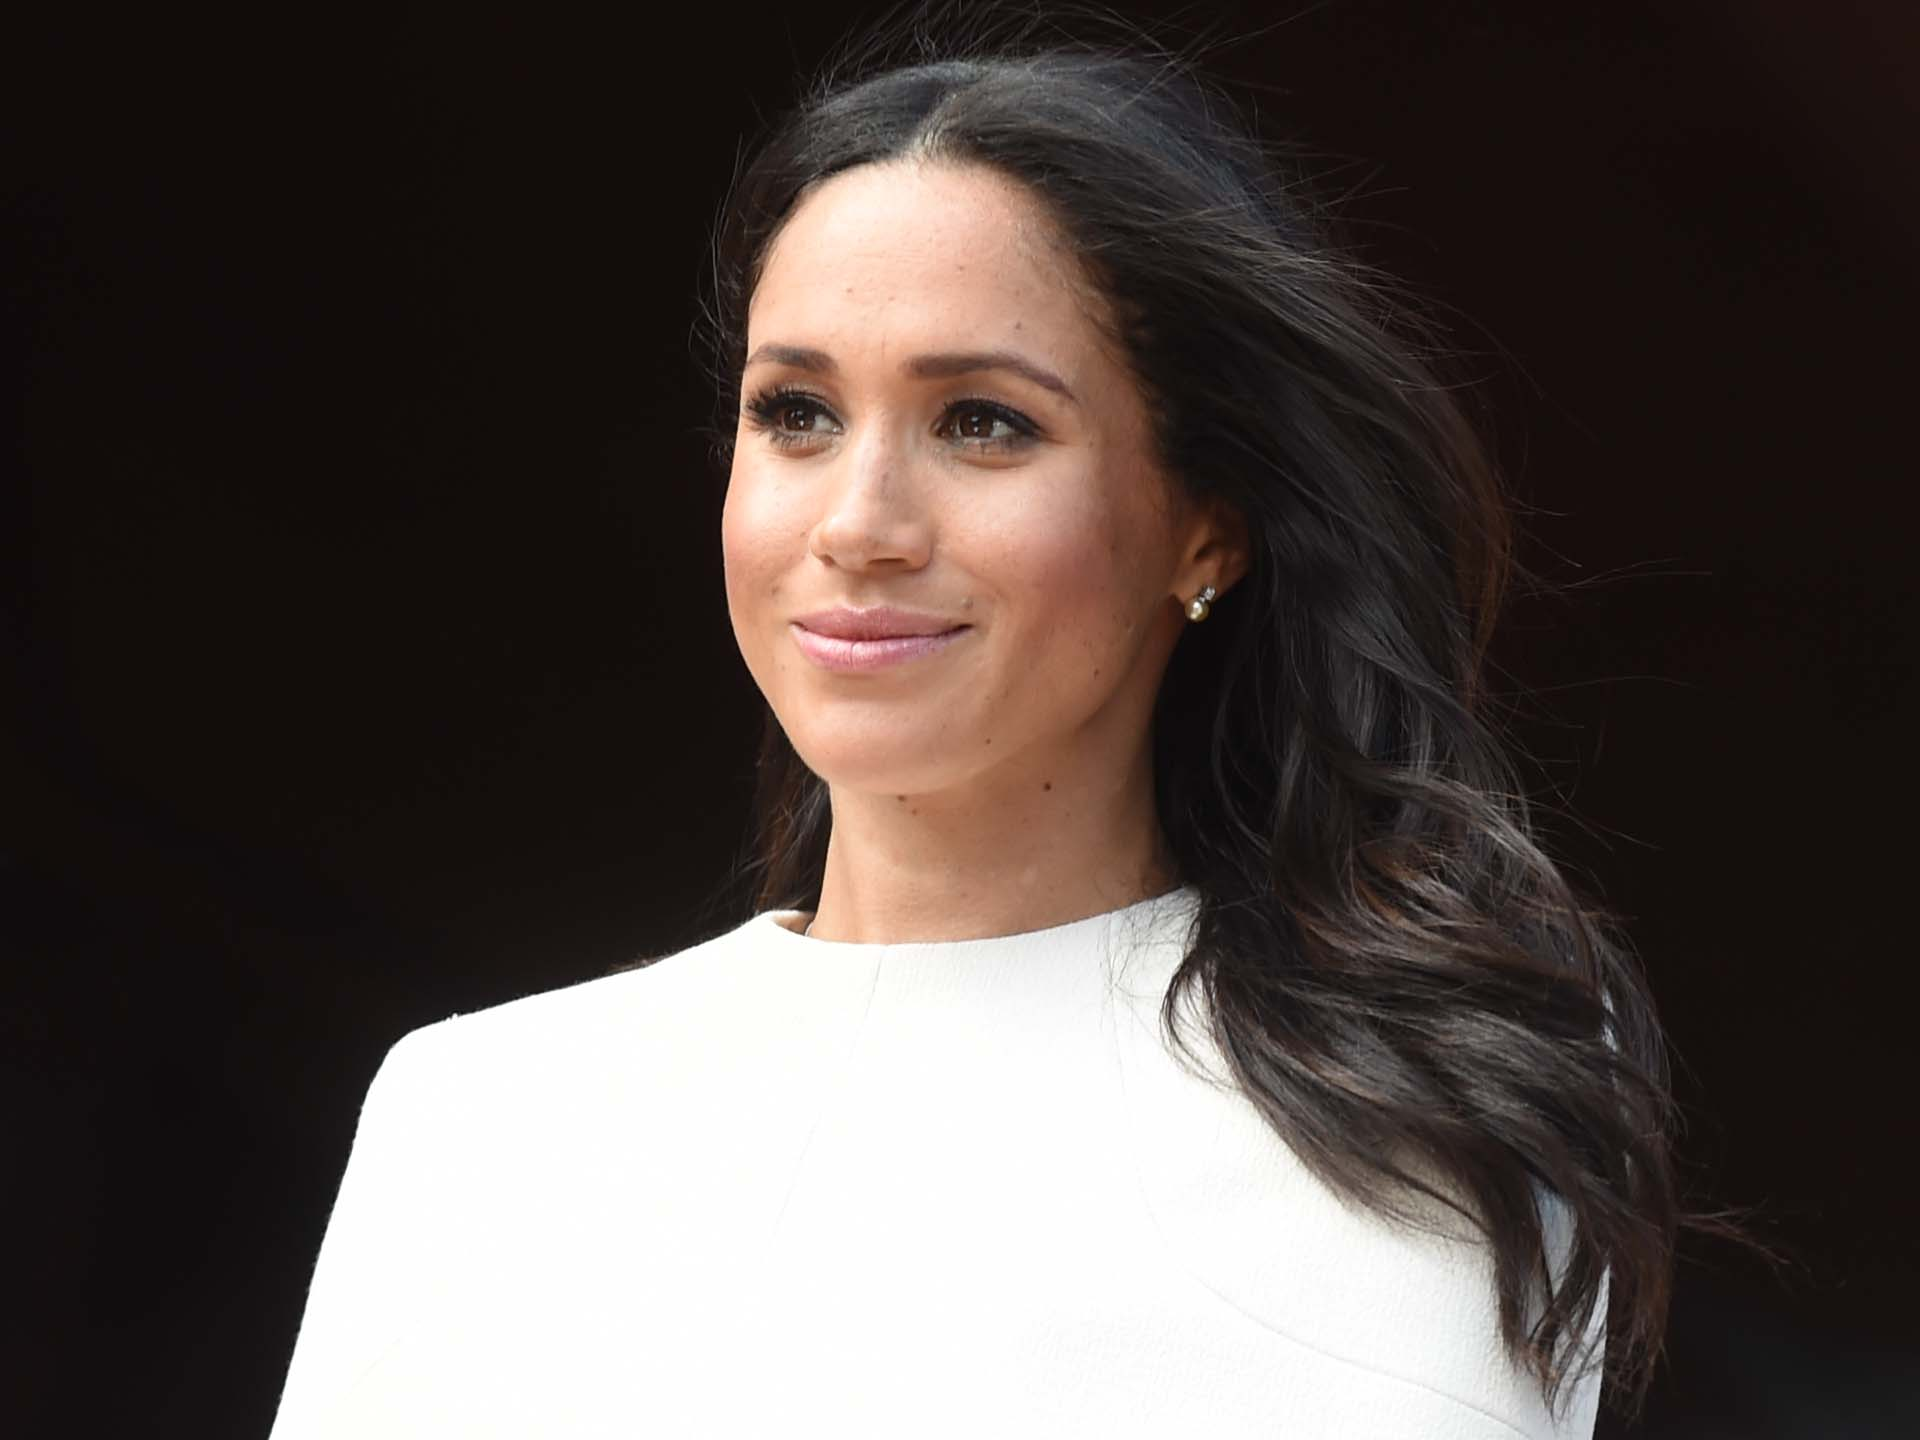 CHESTER, ENGLAND - JUNE 14:  Meghan, Duchess of Sussex and Queen Elizabeth II (not pictured) visit Chester Town Hall on June 14, 2018 in Chester, England. Meghan Markle married Prince Harry last month to become The Duchess of Sussex and this is her first engagement with the Queen. During the visit the pair will open a road bridge in Widnes and visit The Storyhouse and Town Hall in Chester.  (Photo by Eddie Mulholland/WPA Pool/Getty Images)